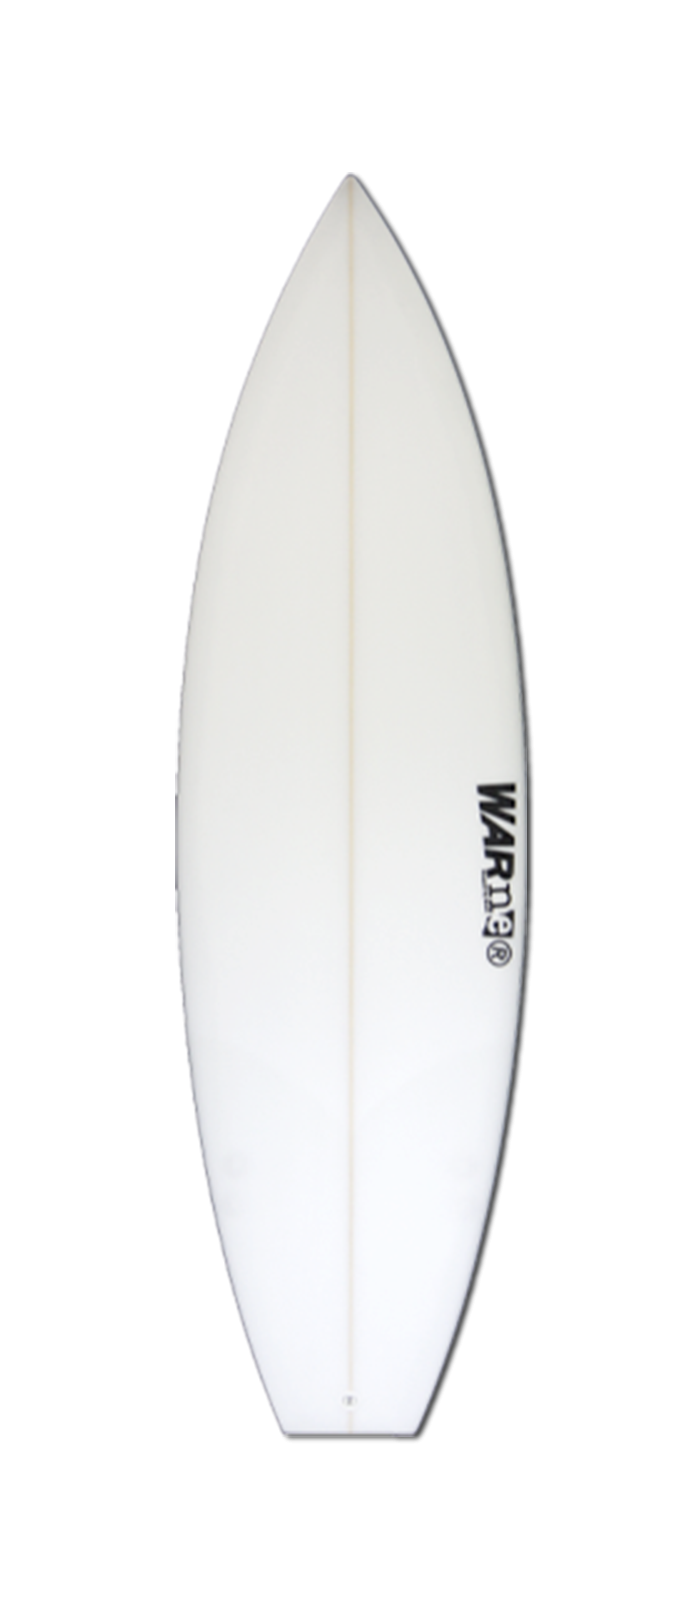 EVIL TWIN surfboard model bottom